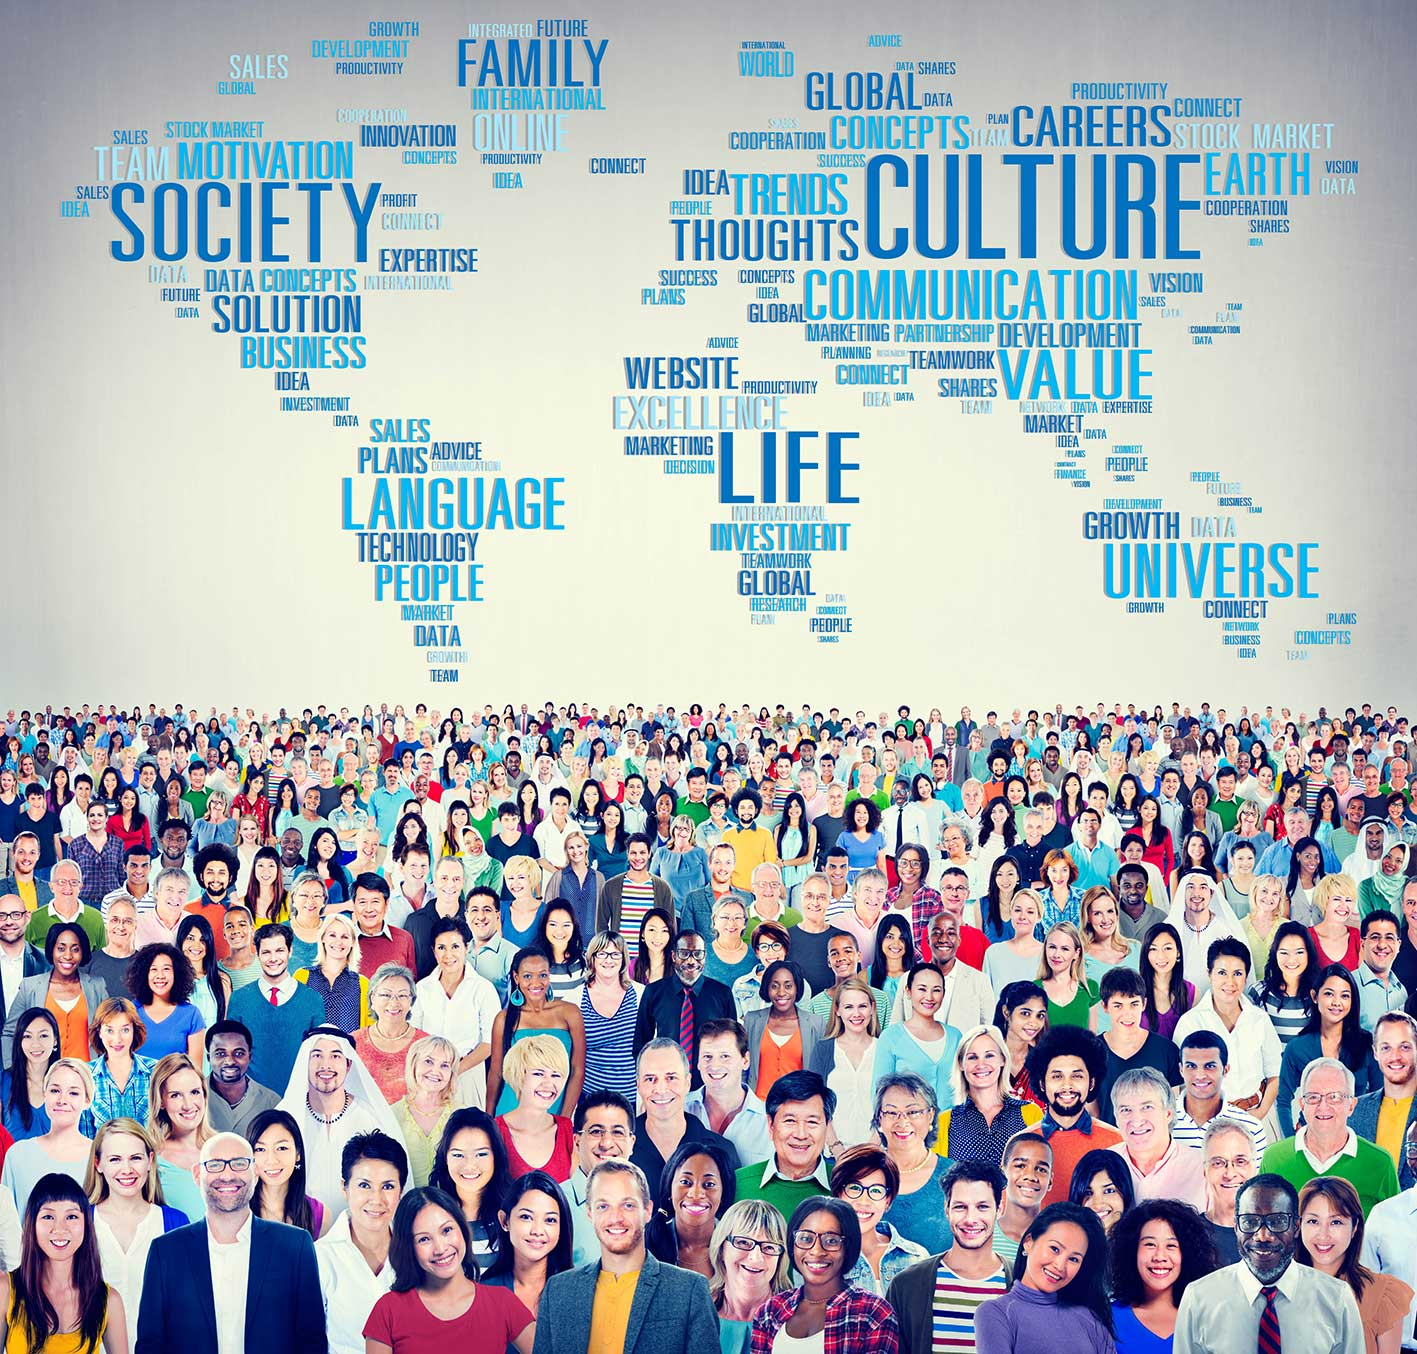 the process of globalization in todays society Globalization and its effect on cultural diversity  their legacy shines today in the splendid cities of the  globalization has complicated the process of .